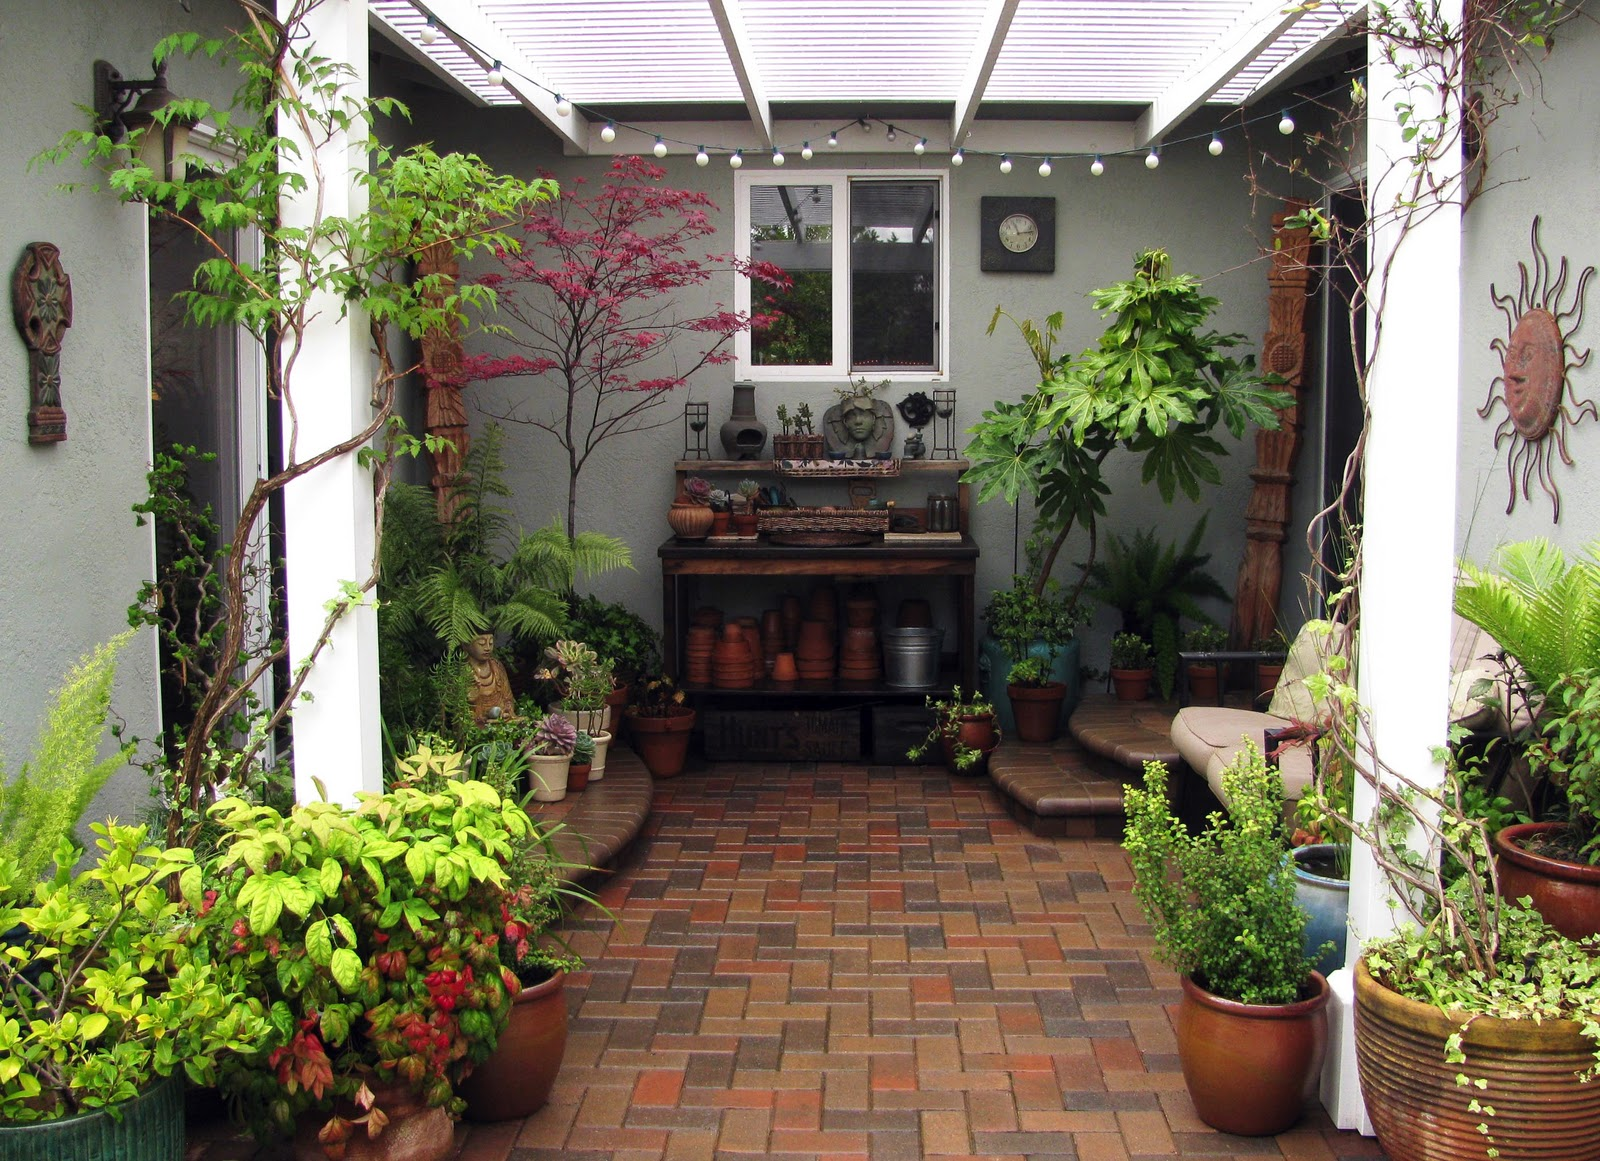 Interleafings garden designers roundtable expanding for Home interior garden